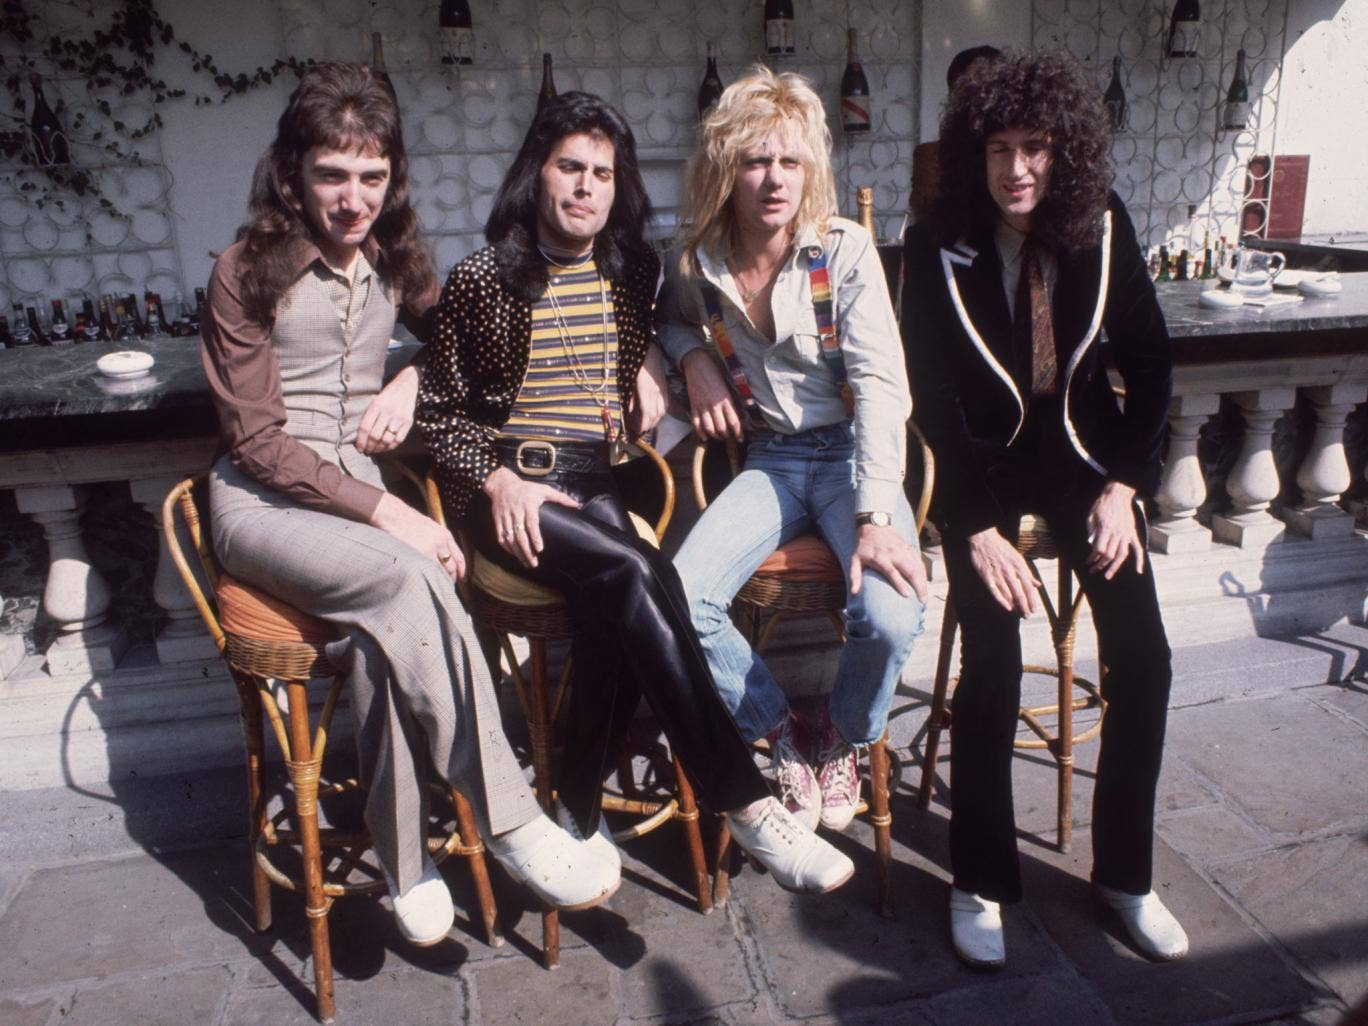 John Deacon, Freddie Mercury, Roger Taylor and Brian May of Queen created the UK's bestselling album of all-time, Greatest Hits